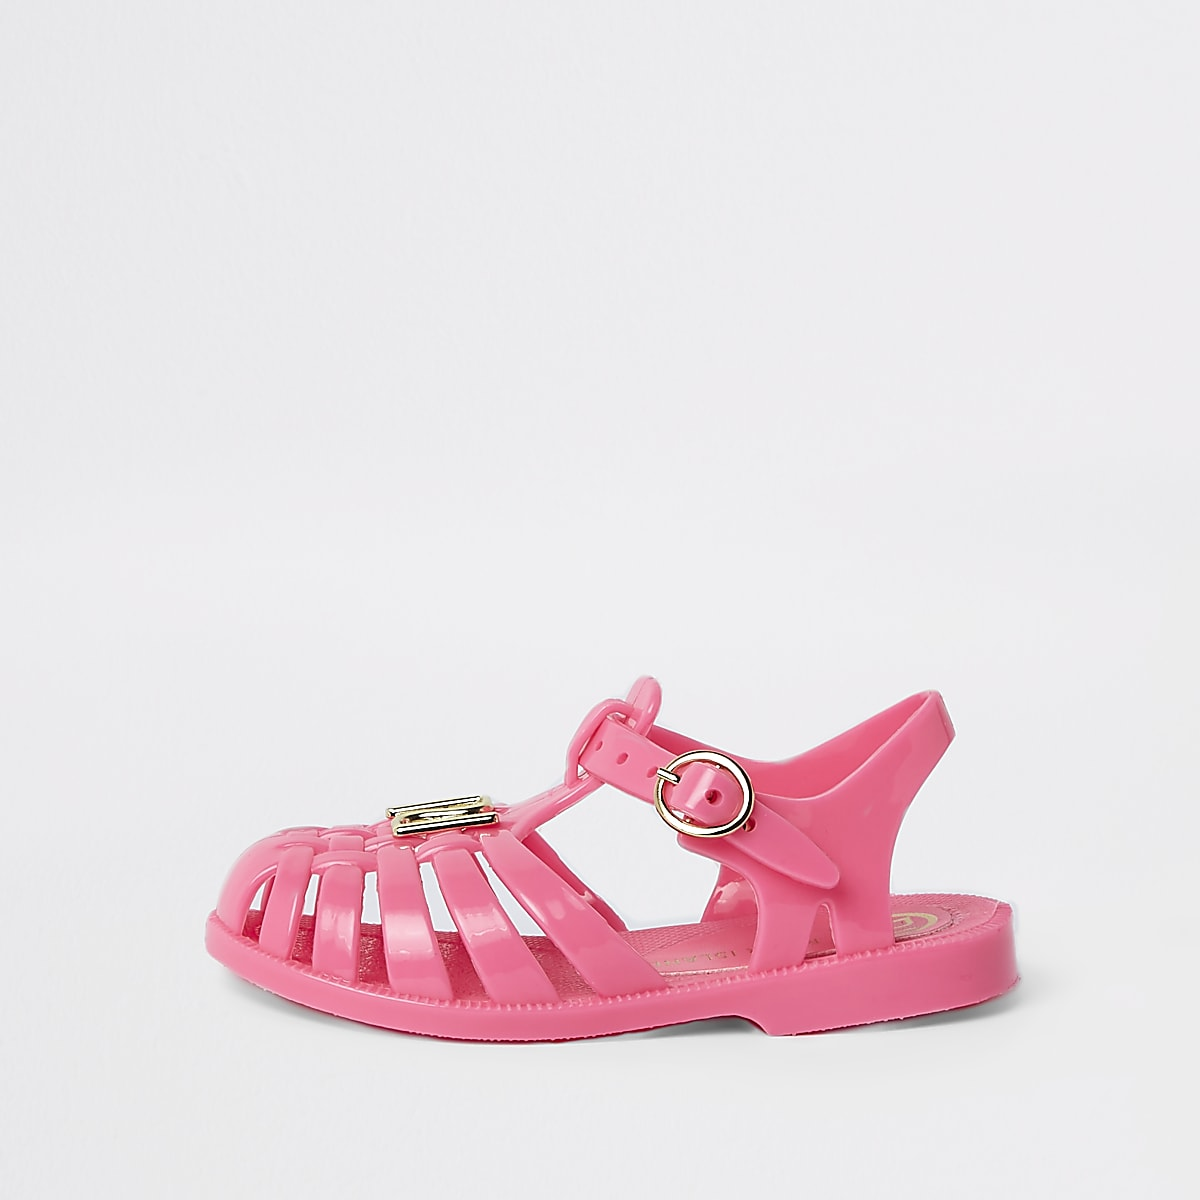 4753bd30ea71 Mini girls neon pink caged jelly sandals - Baby Girls Sandals - Baby Girls  Shoes   Boots - Mini Girls - girls